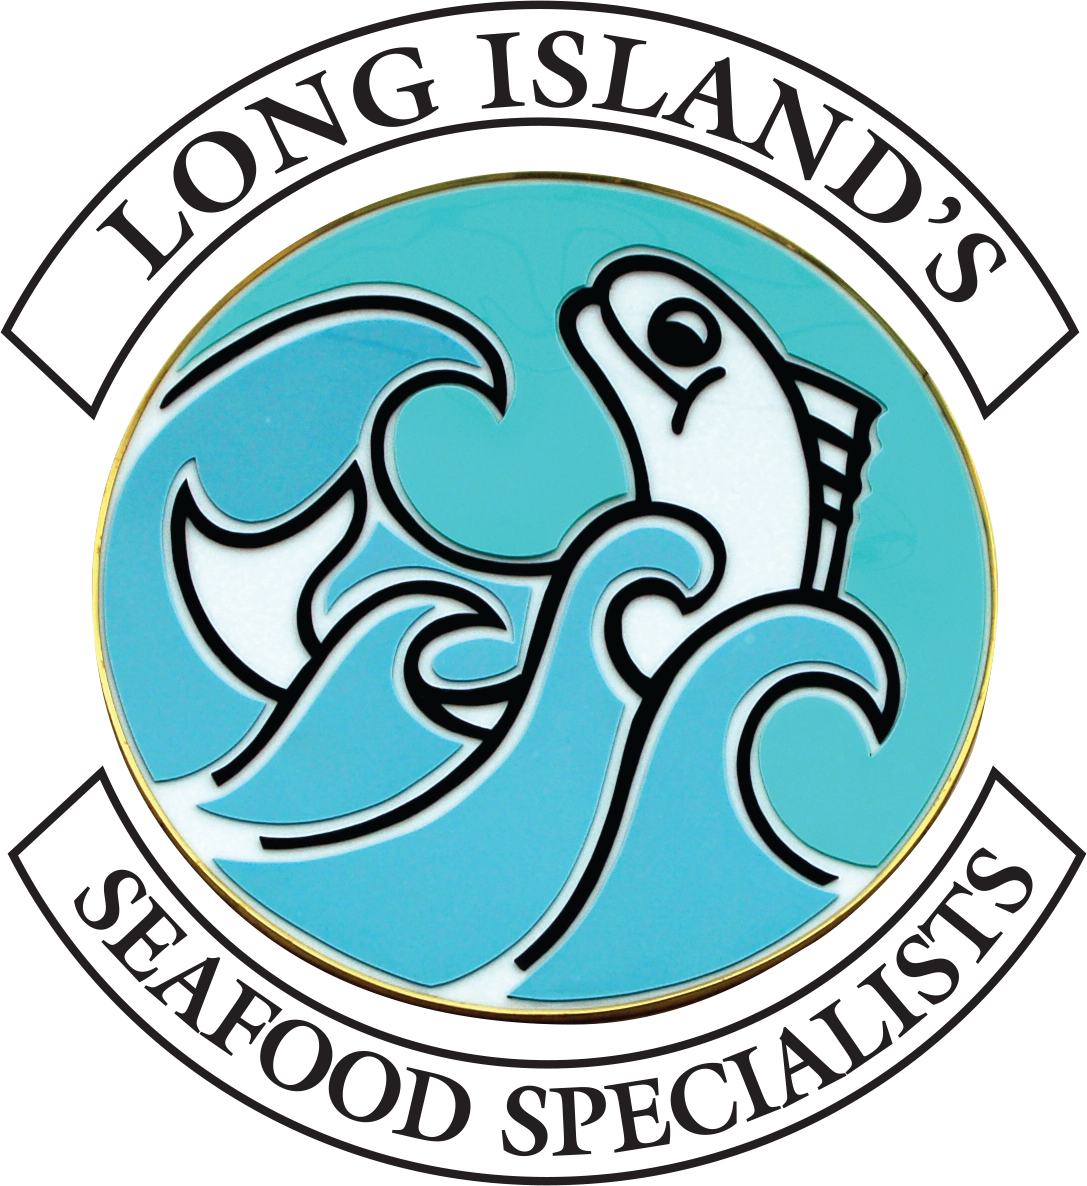 long island's seafood specialists